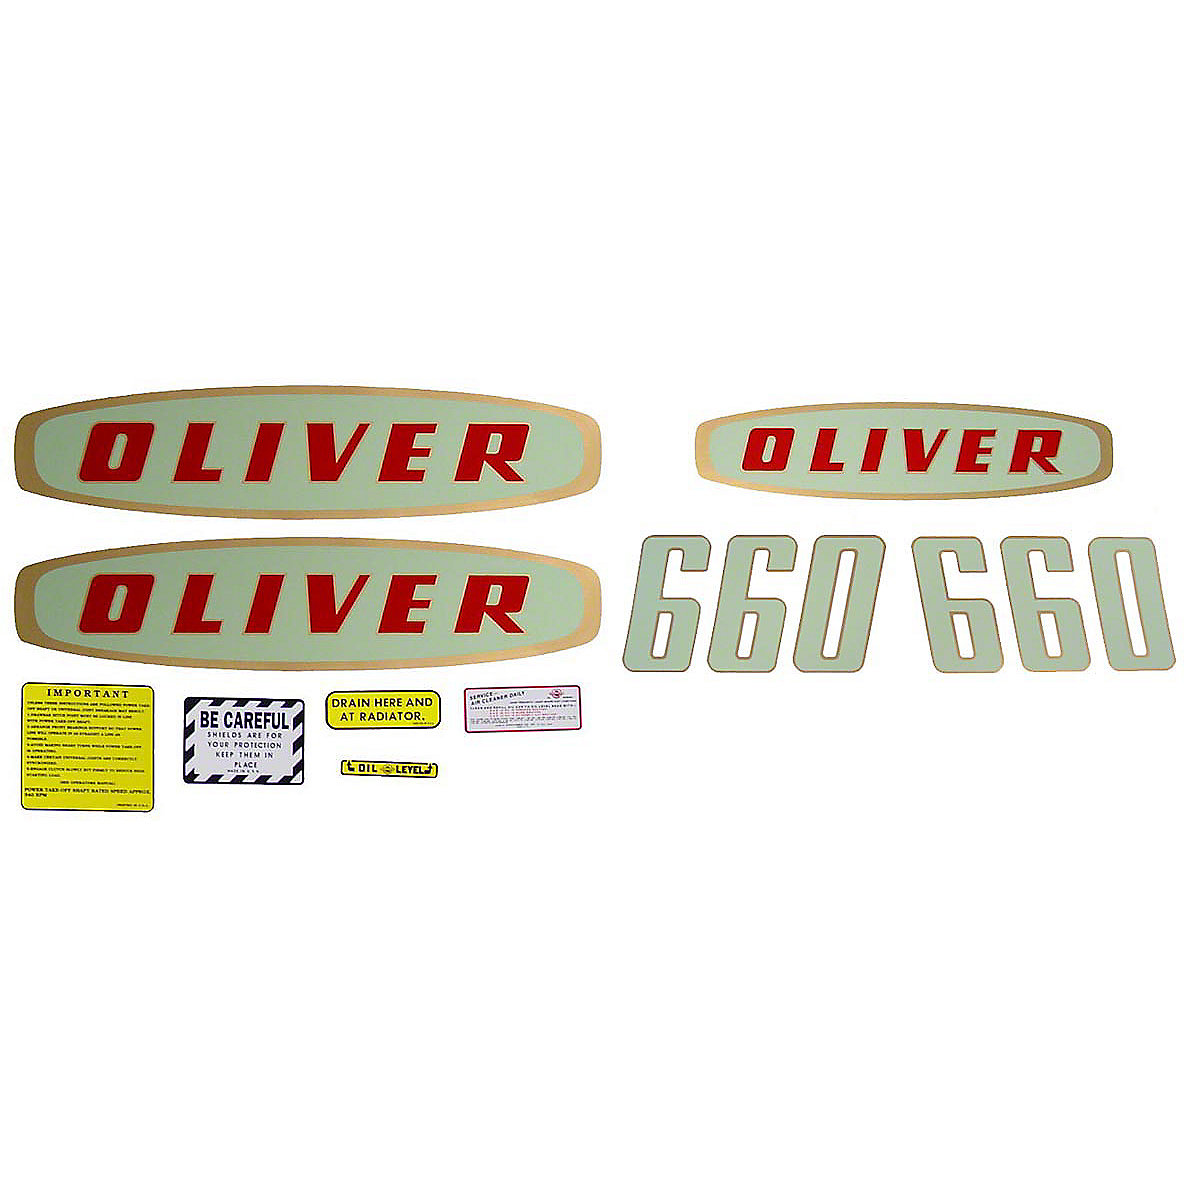 Mylar Decal Set For Oliver 660 Gas Early Model Tractors.